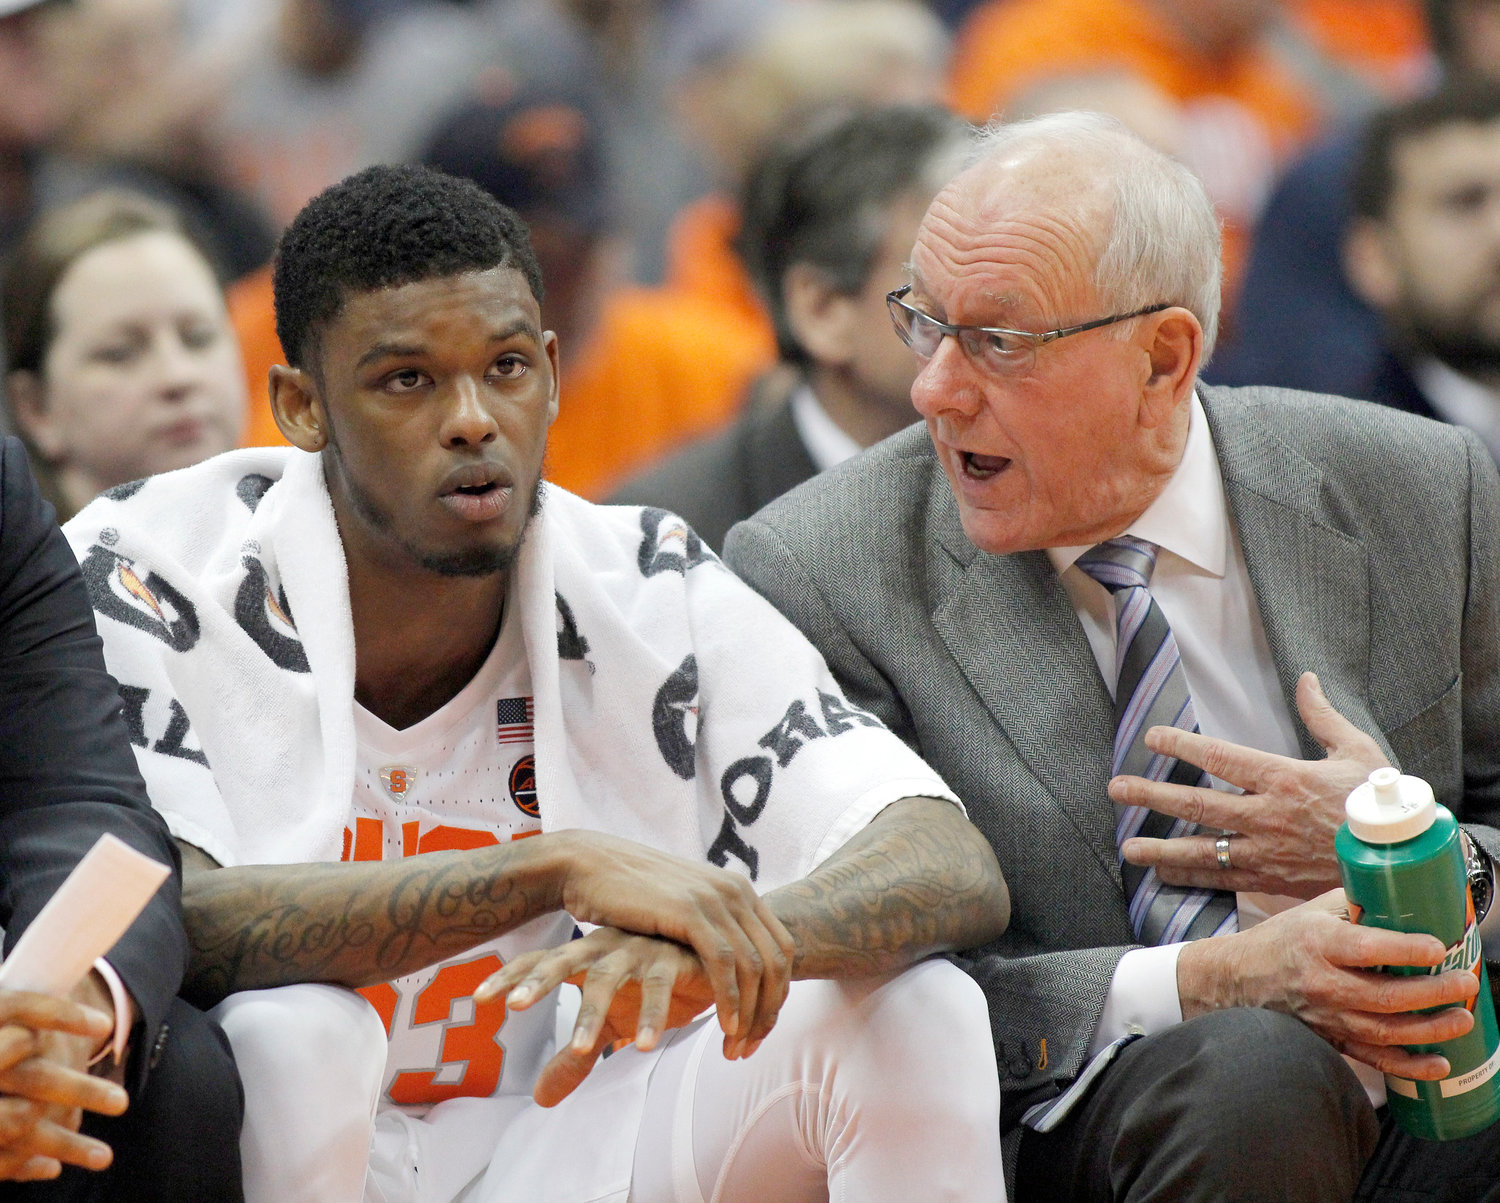 Boeheim to coach this weekend for Syracuse